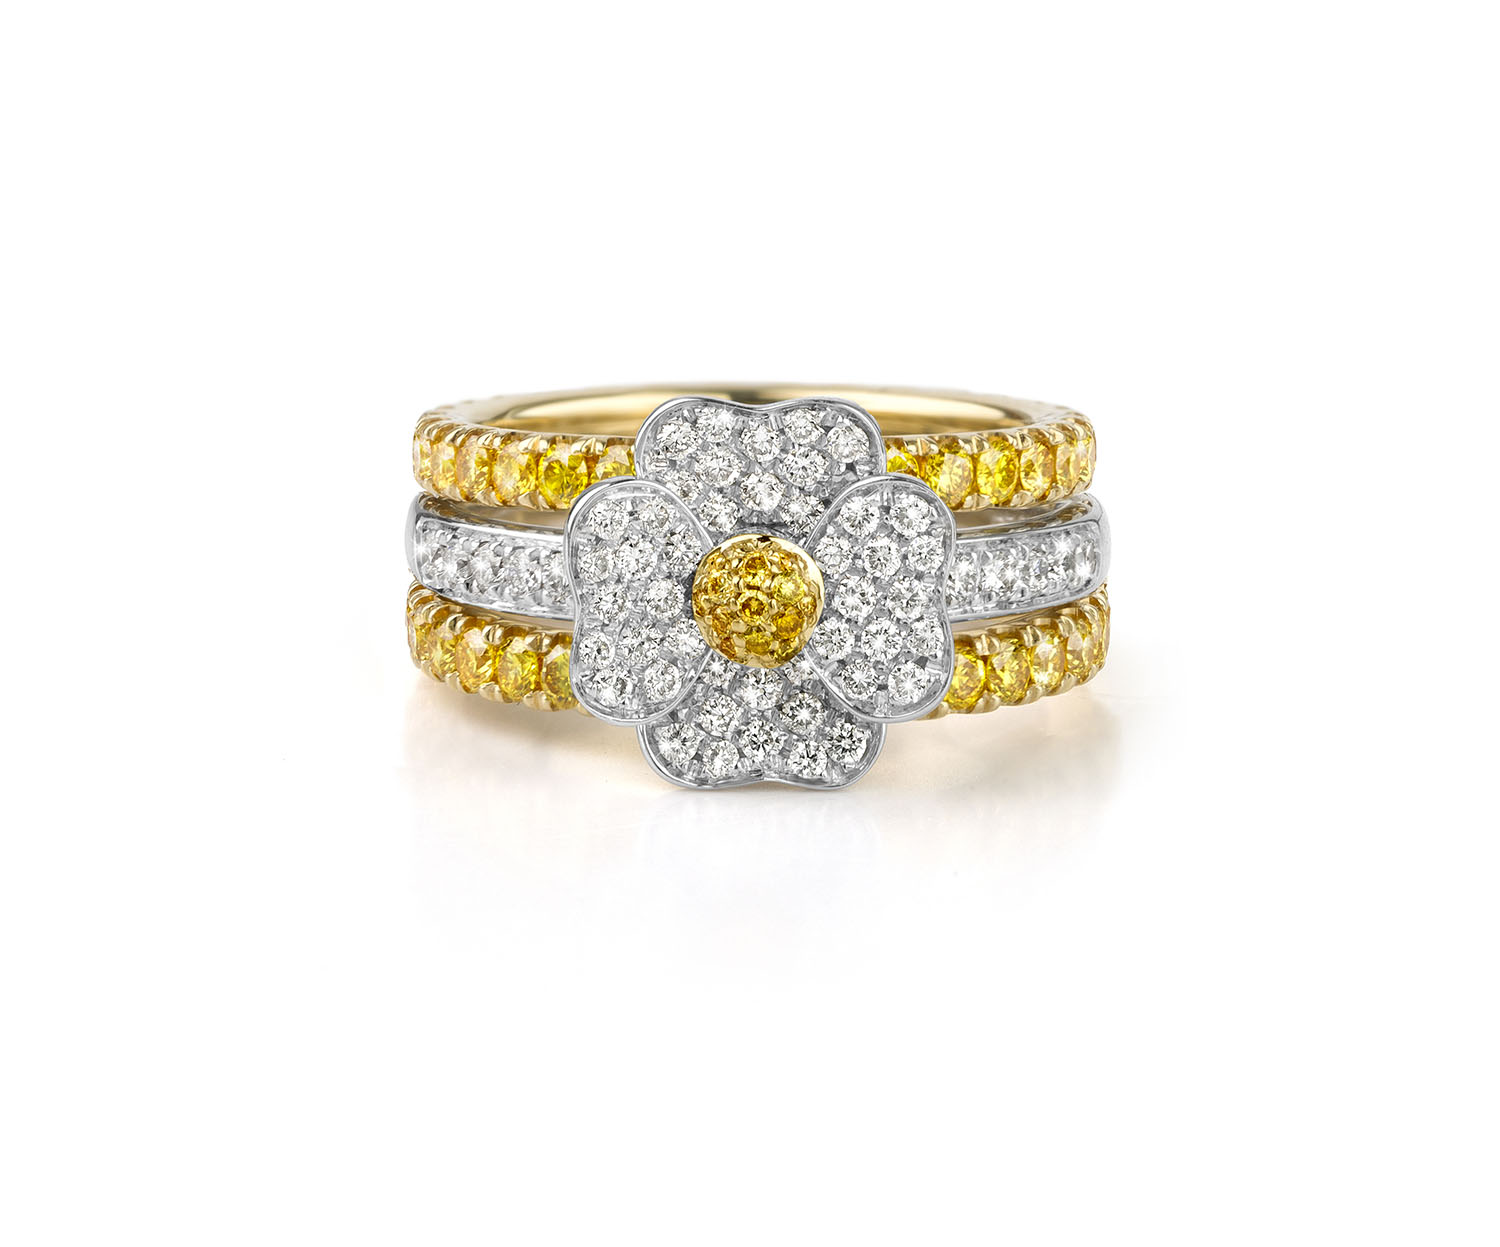 La collection de bagues en or et diamants Flowers de la Joaillerie De Greef à Bruxelles, bague or blanc et diamants jaune et blanc extras clairs.